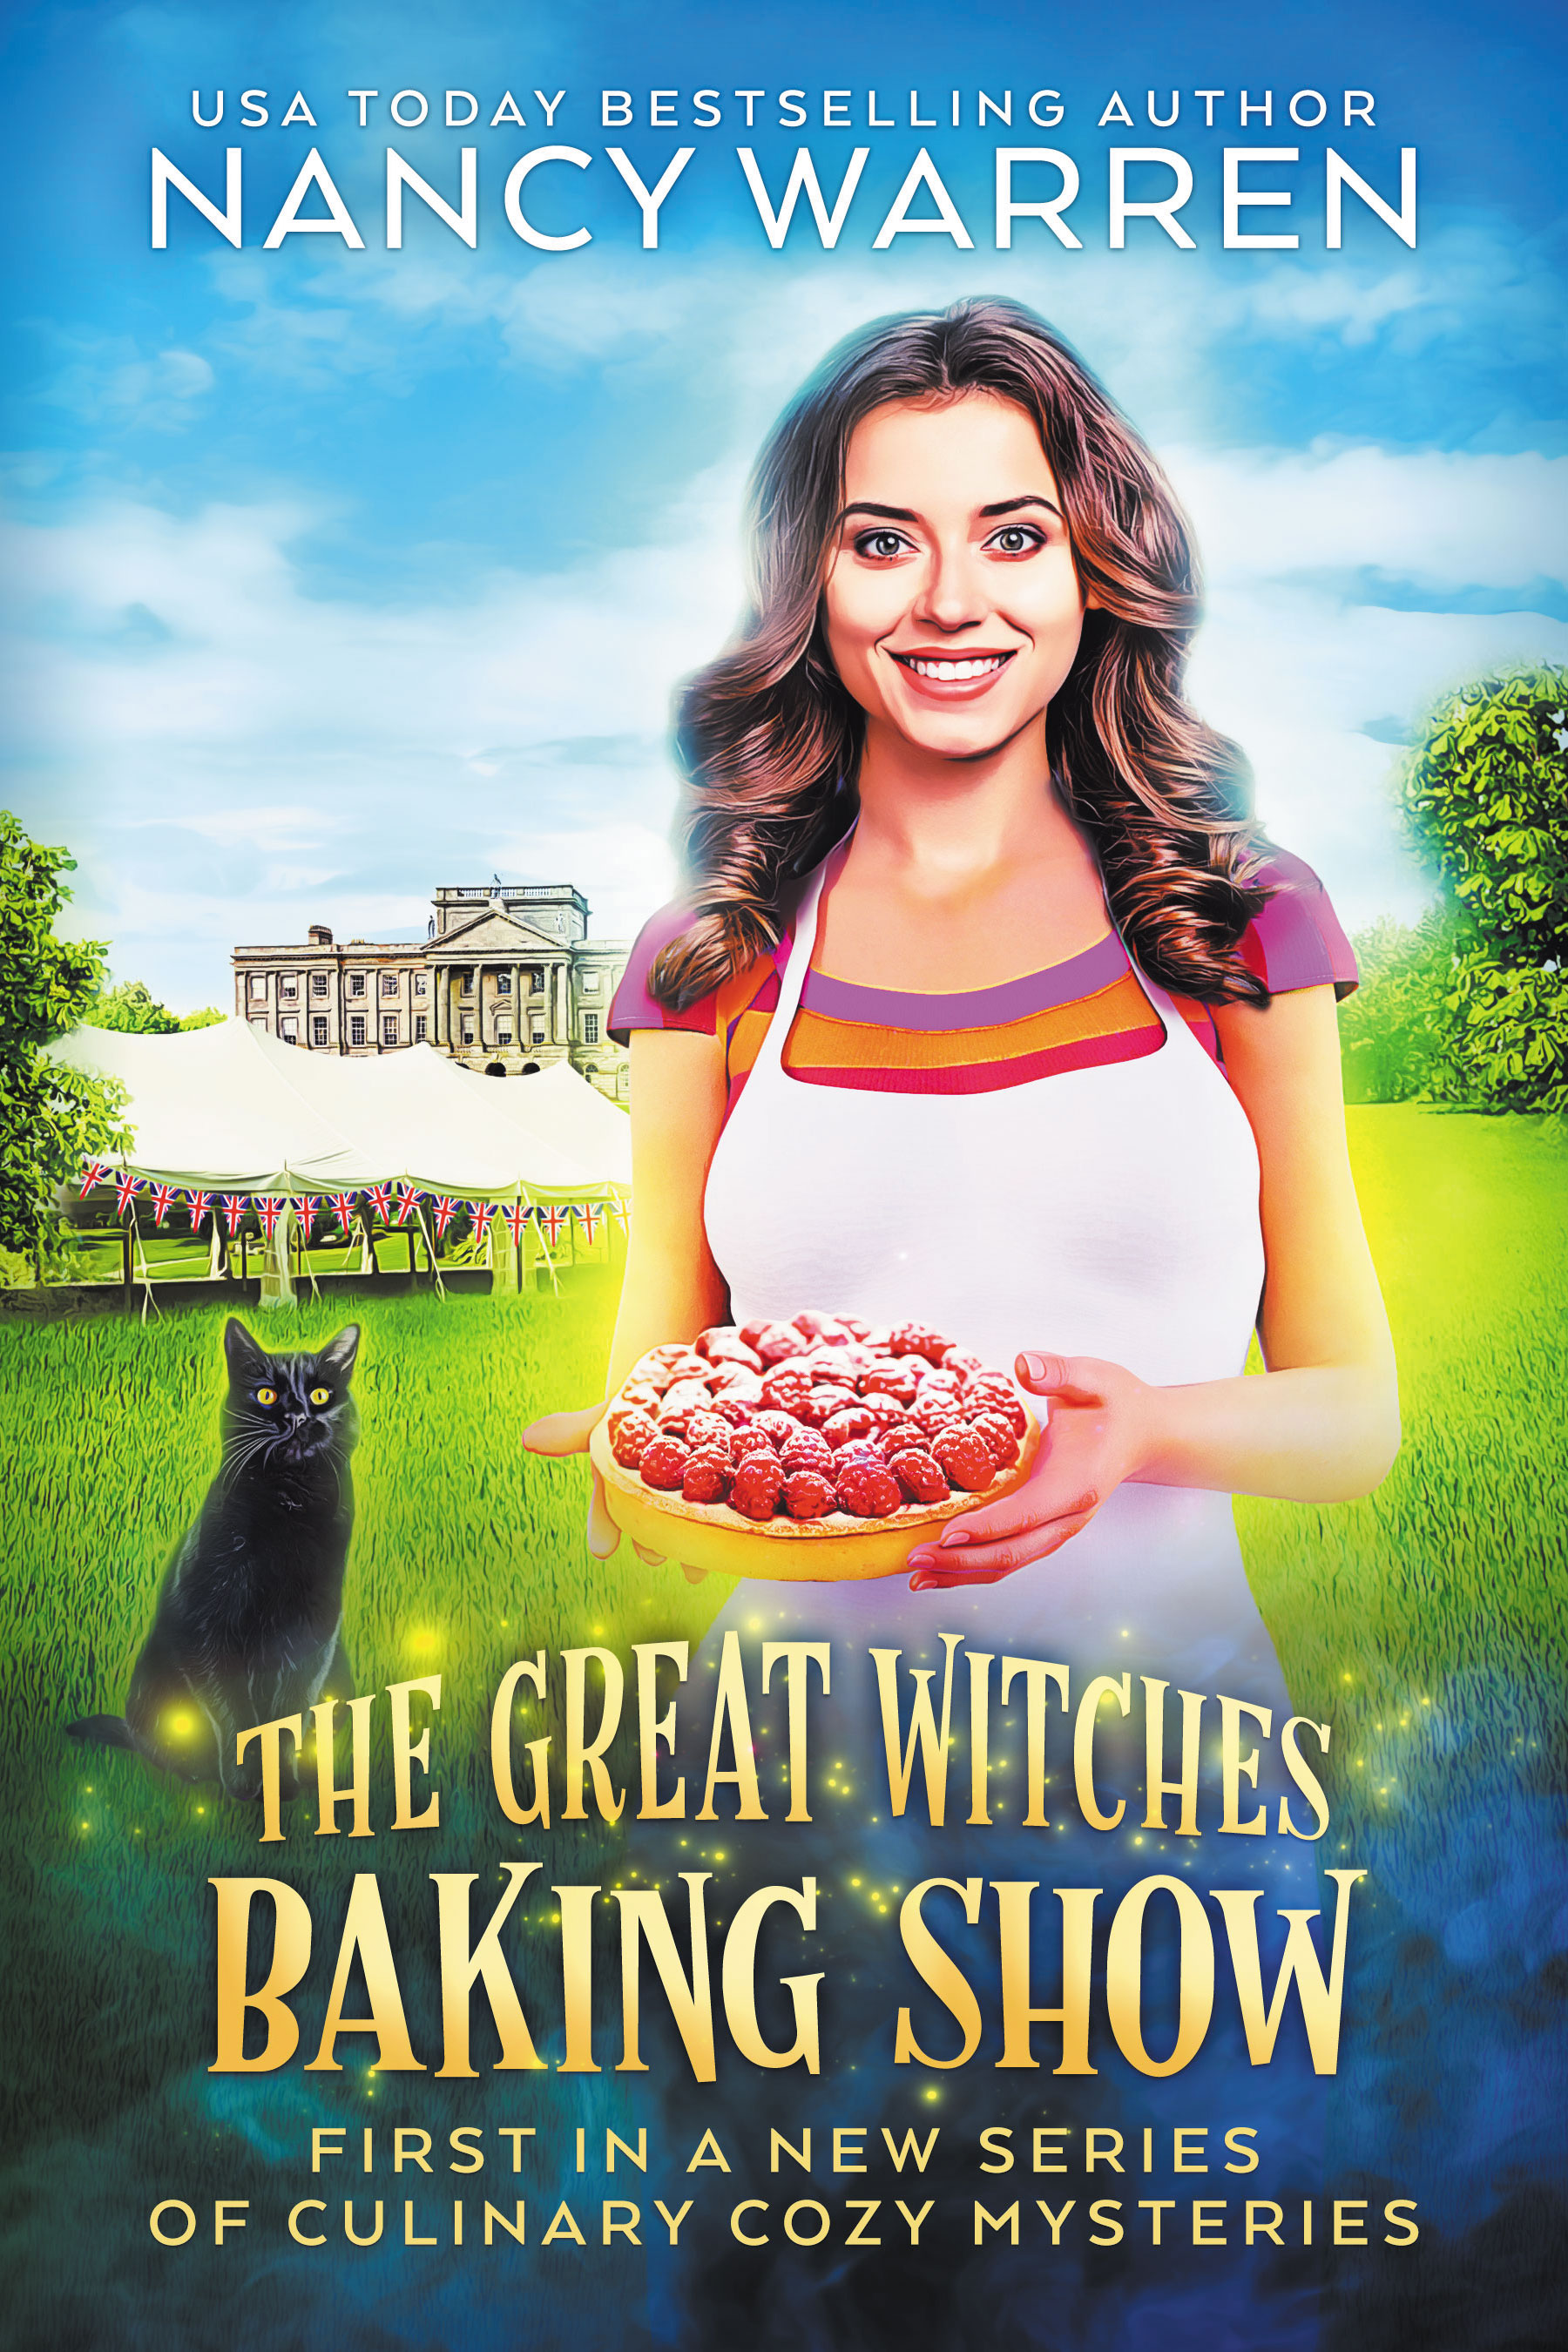 The Great Witches Baking Show by Nancy Warren